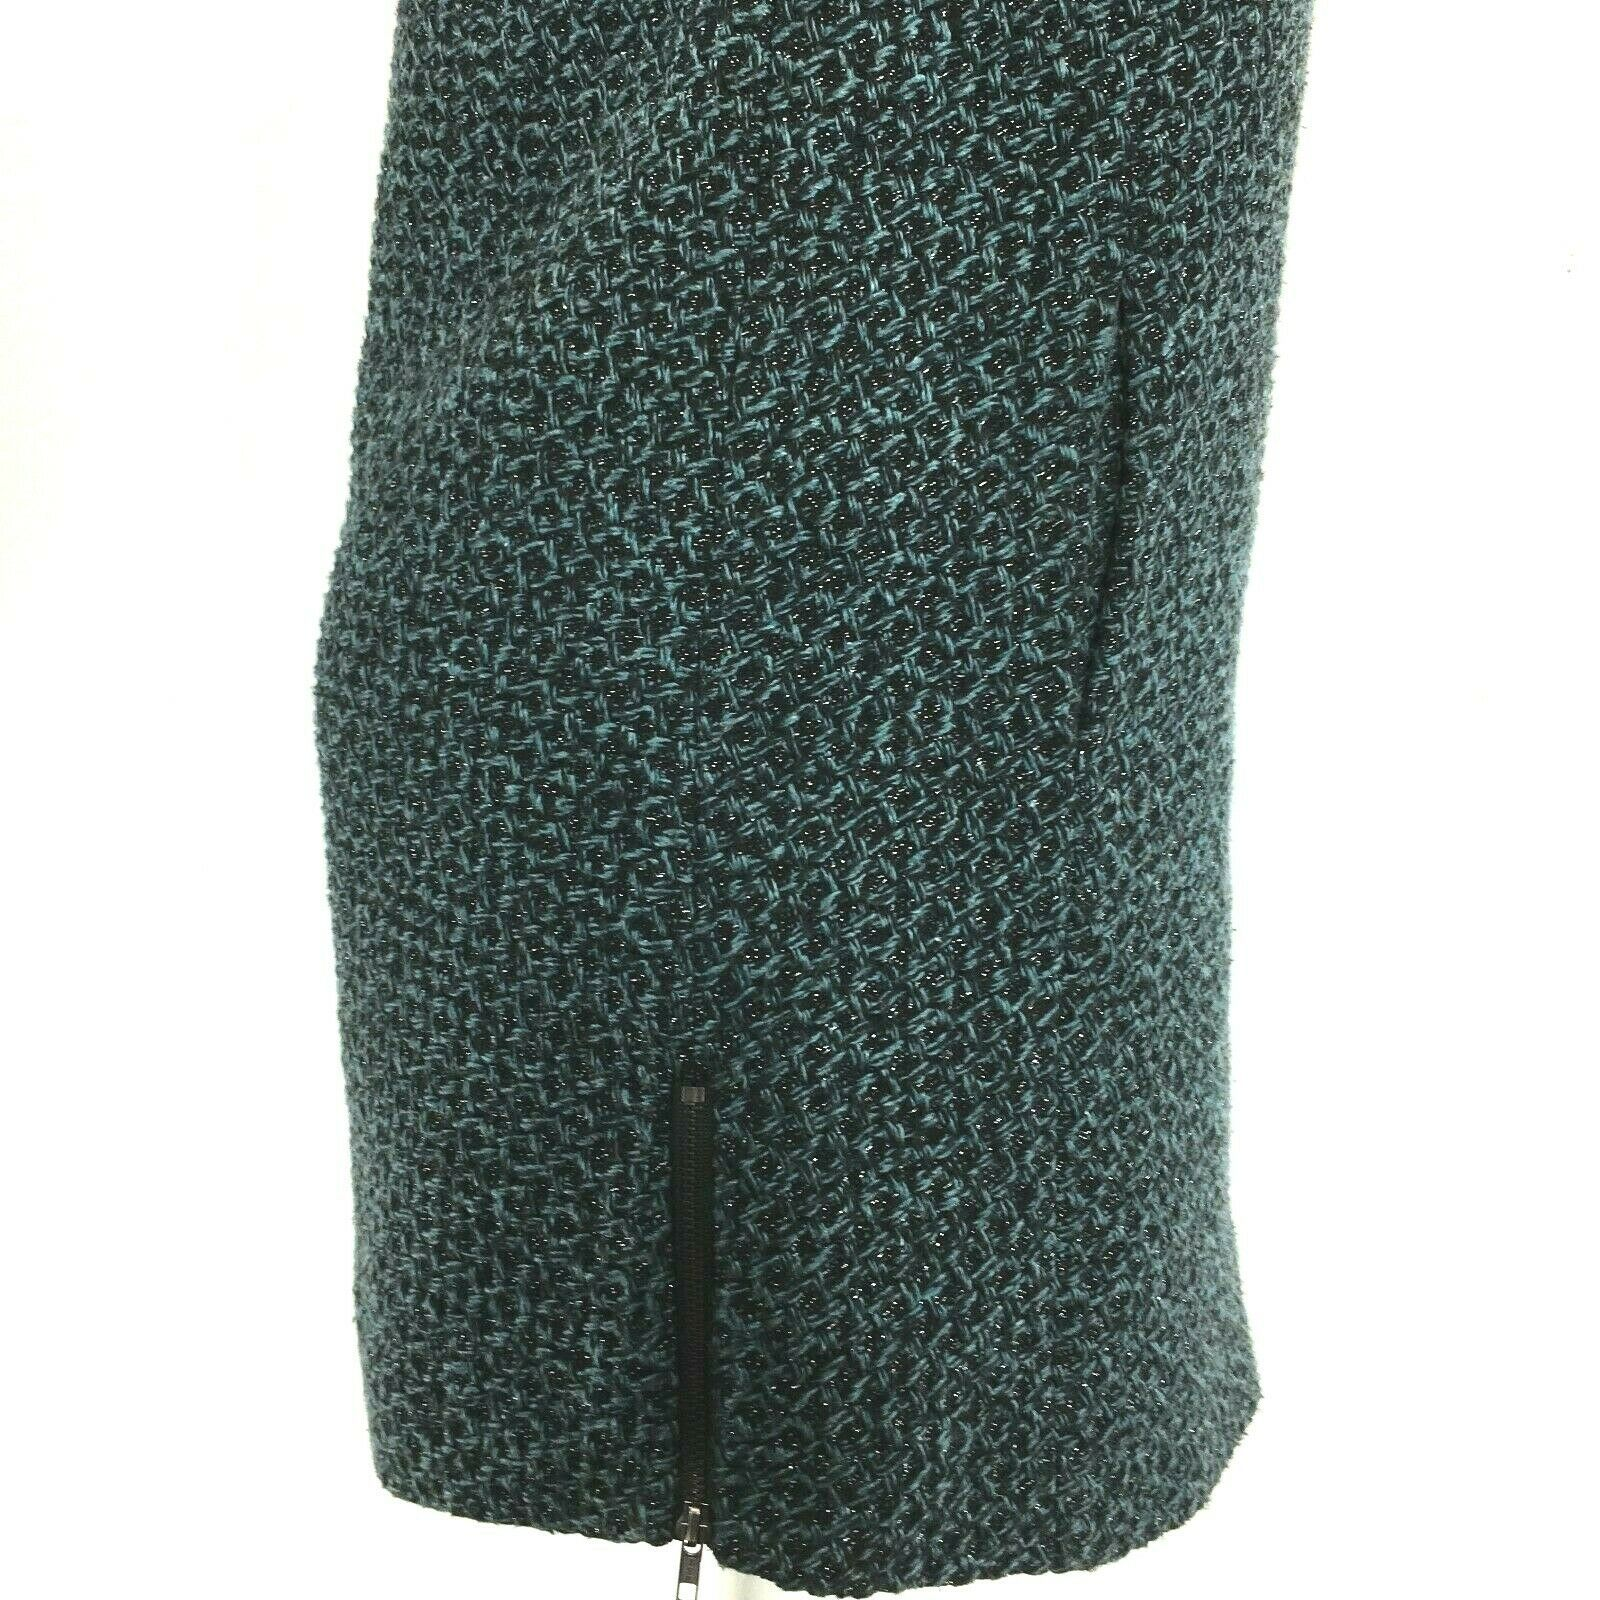 BCBG Generation Large Dress Legging Tunic Black Teal Metallic Tweed Pocket Zip